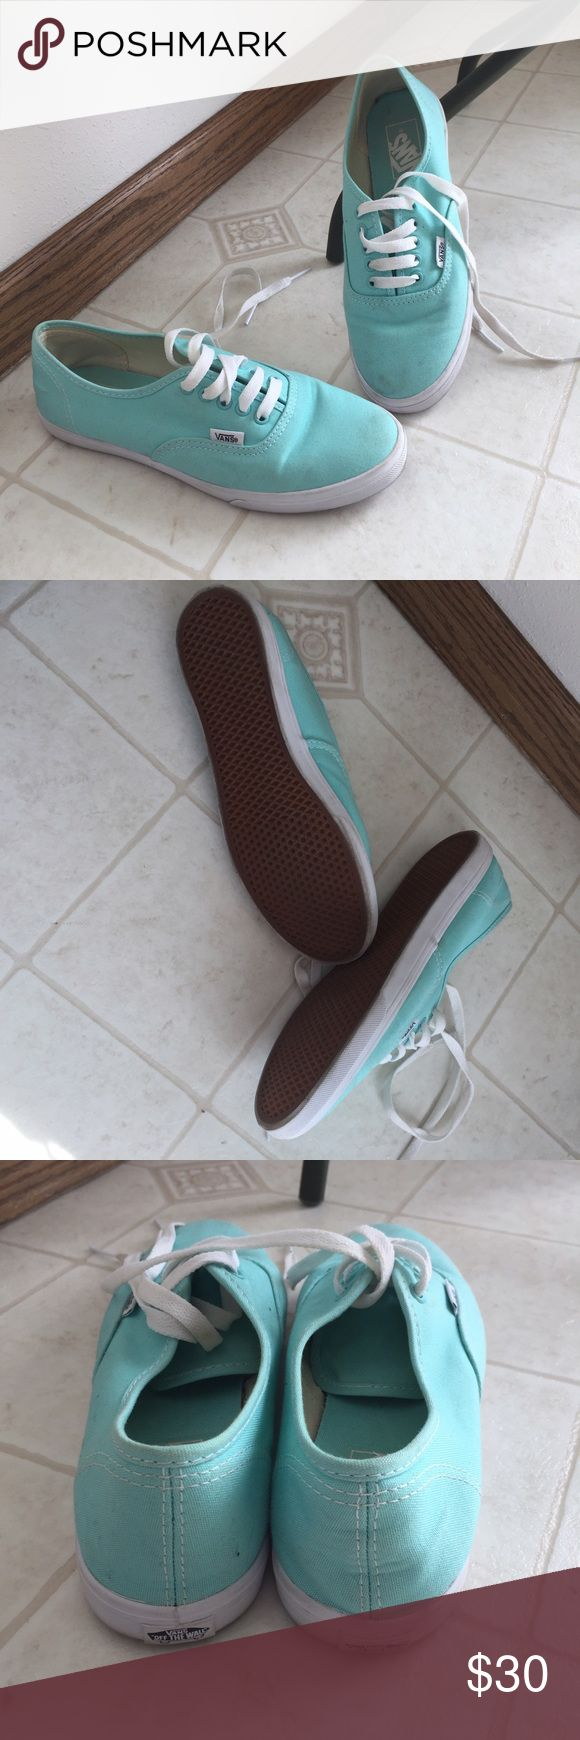 Light blue vans Cute color, close to Tiffany blue but alittle more aqua. They're too small for me, so I only wore them a couple times. There's some scuffing as shown in pictures, and reflected in price. Vans Shoes Sneakers